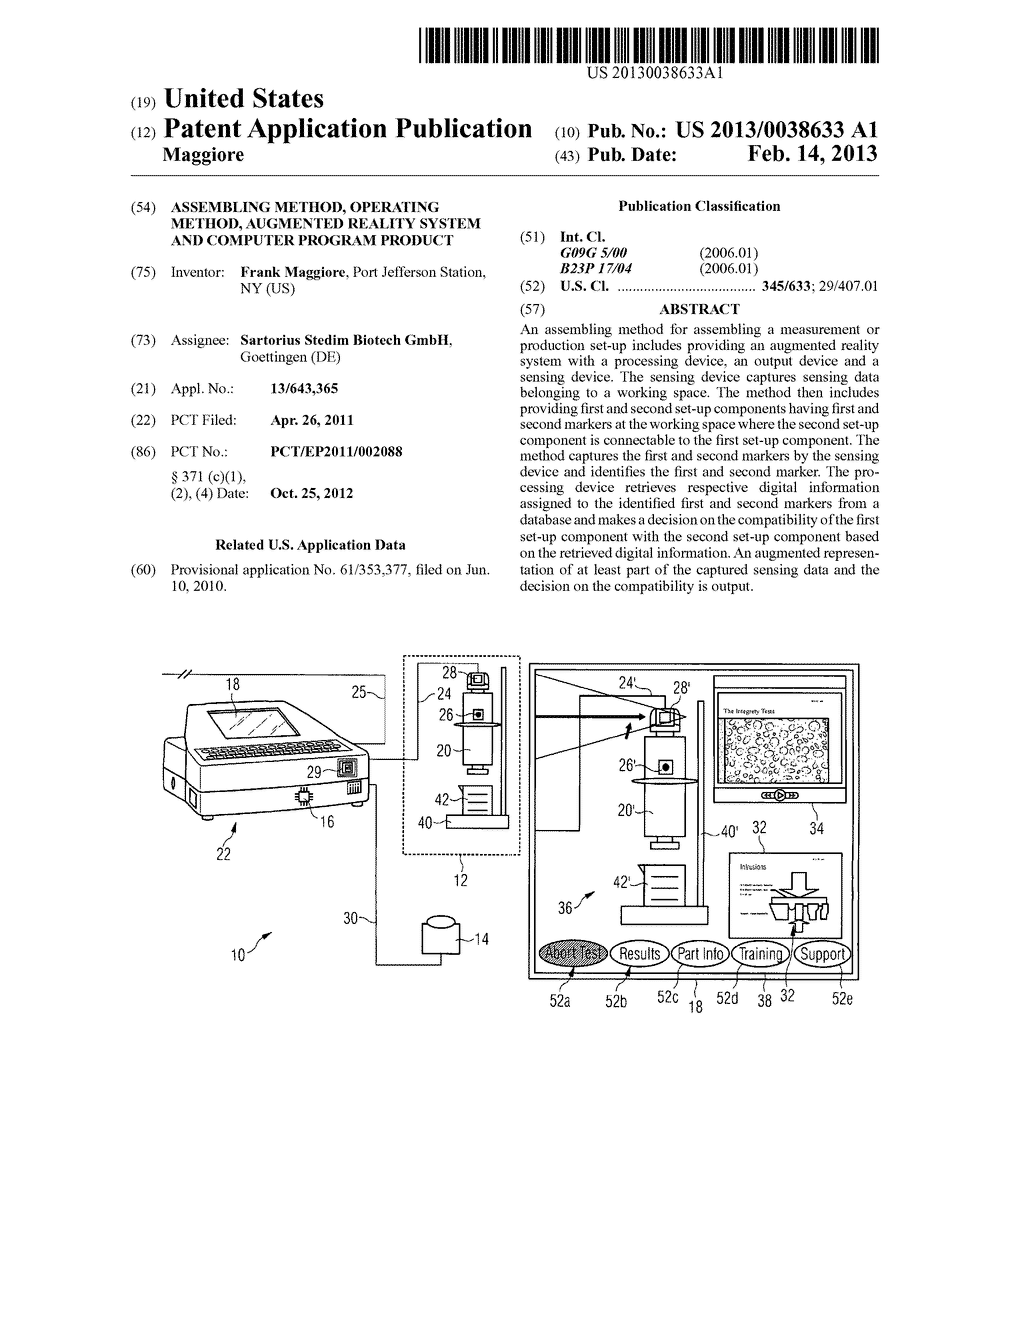 ASSEMBLING METHOD, OPERATING METHOD, AUGMENTED REALITY SYSTEM AND COMPUTER     PROGRAM PRODUCT - diagram, schematic, and image 01